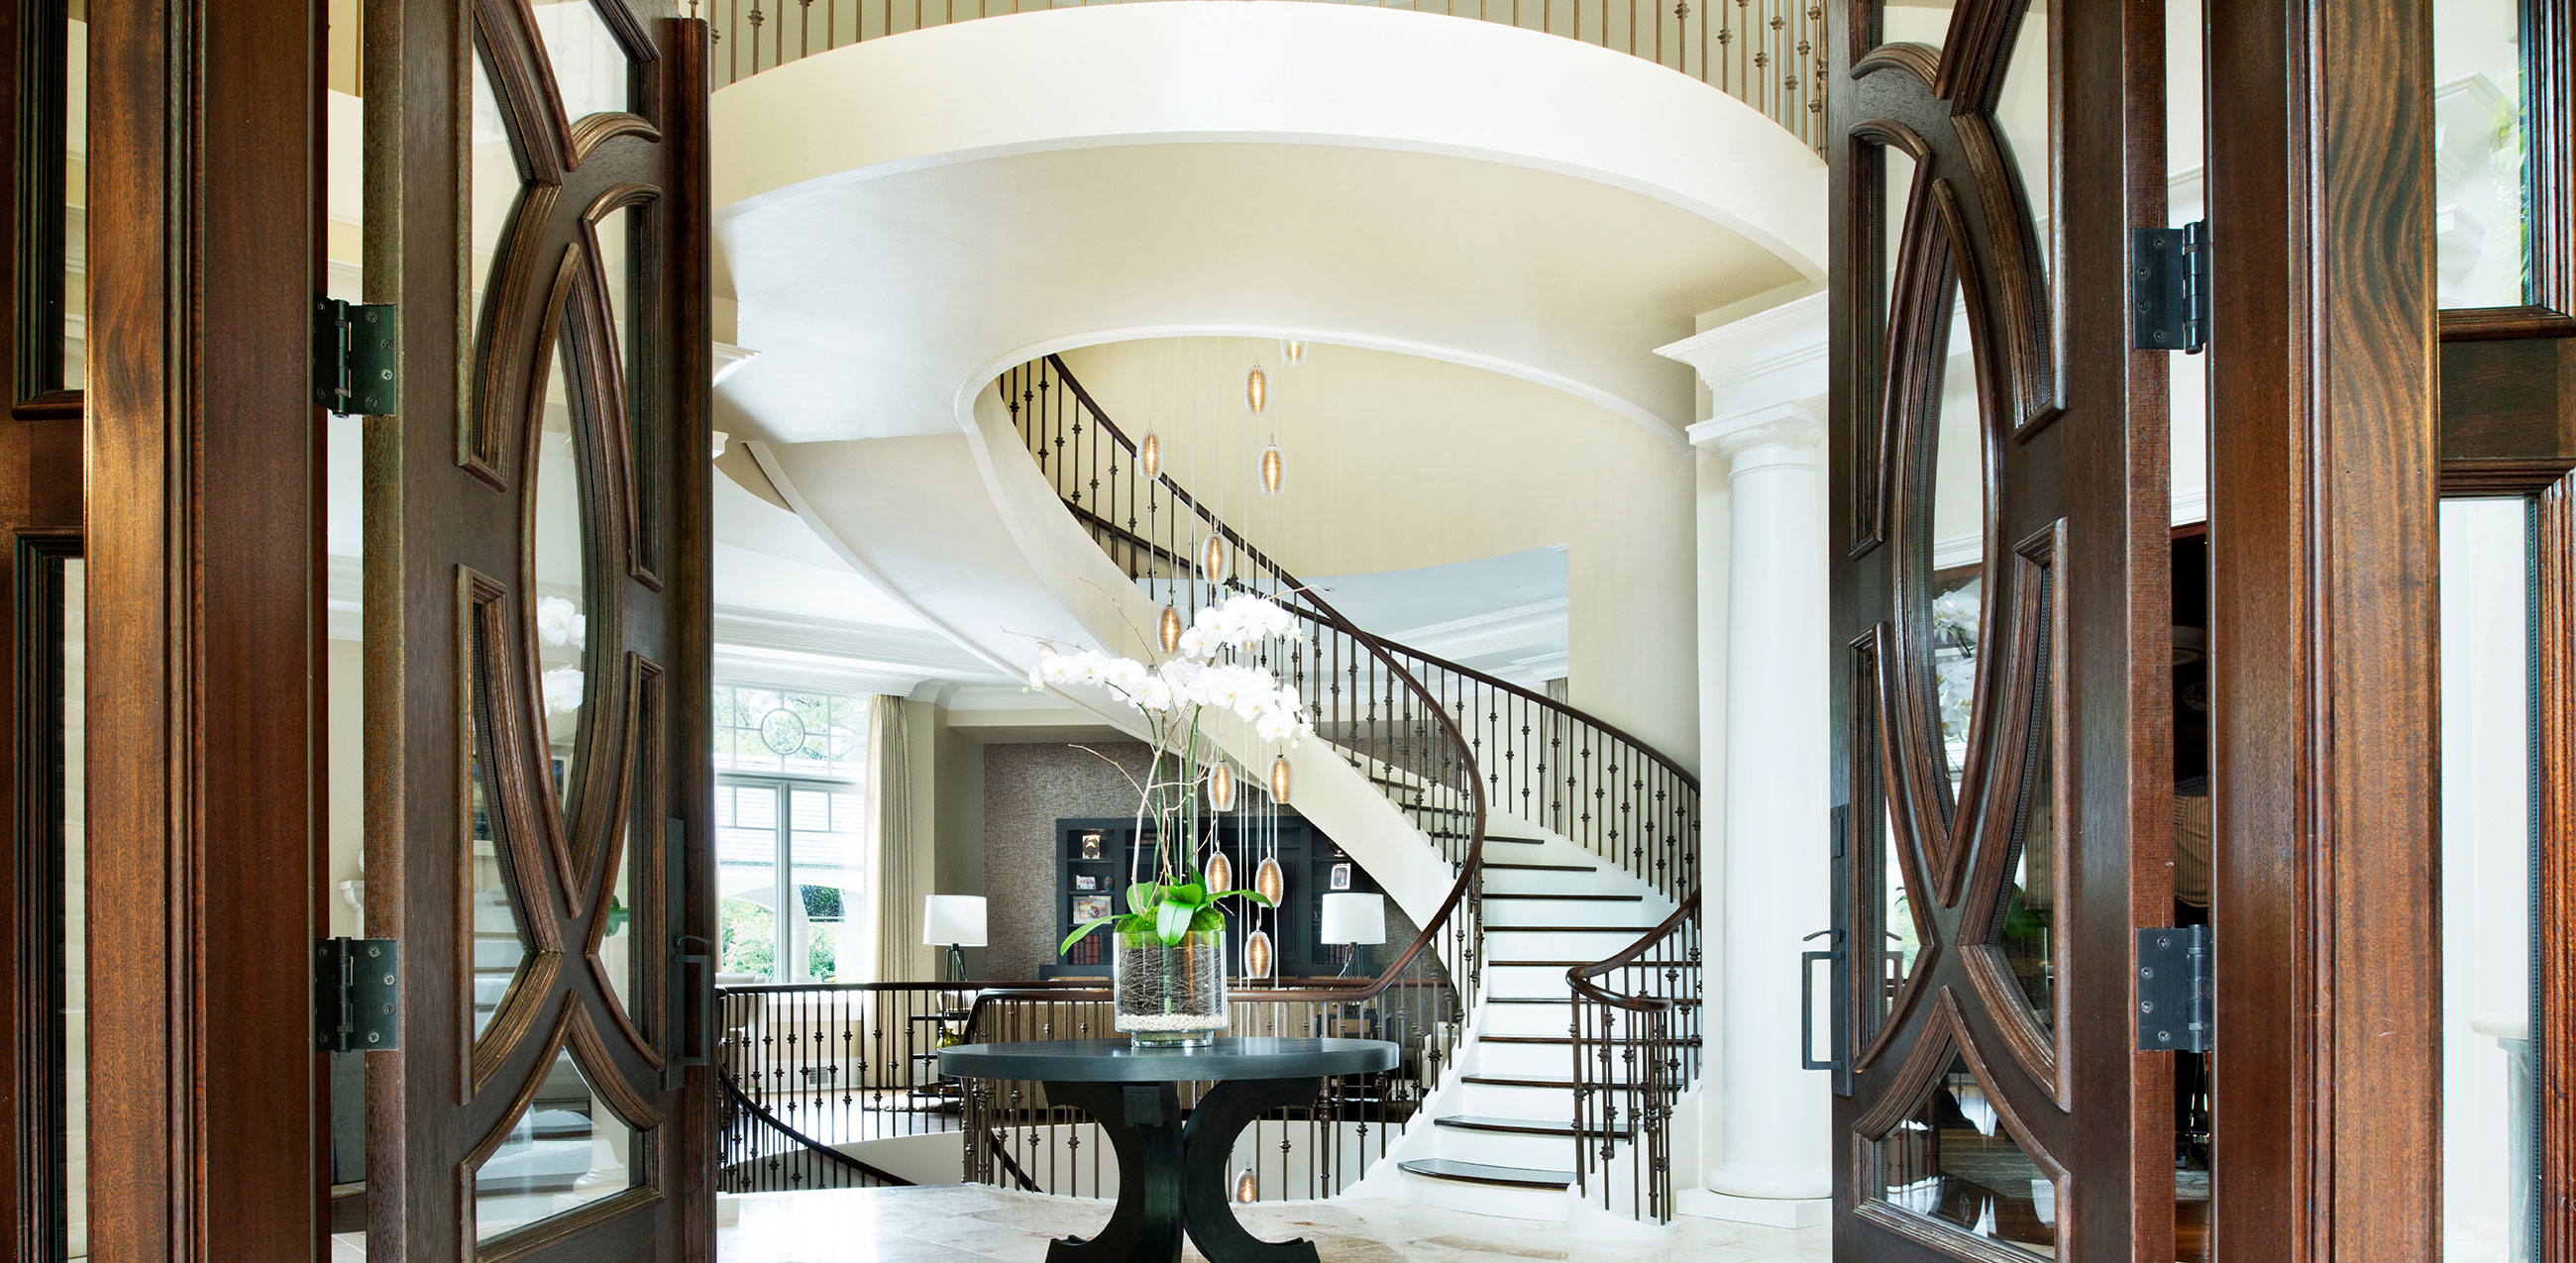 Grand entryway of a home.